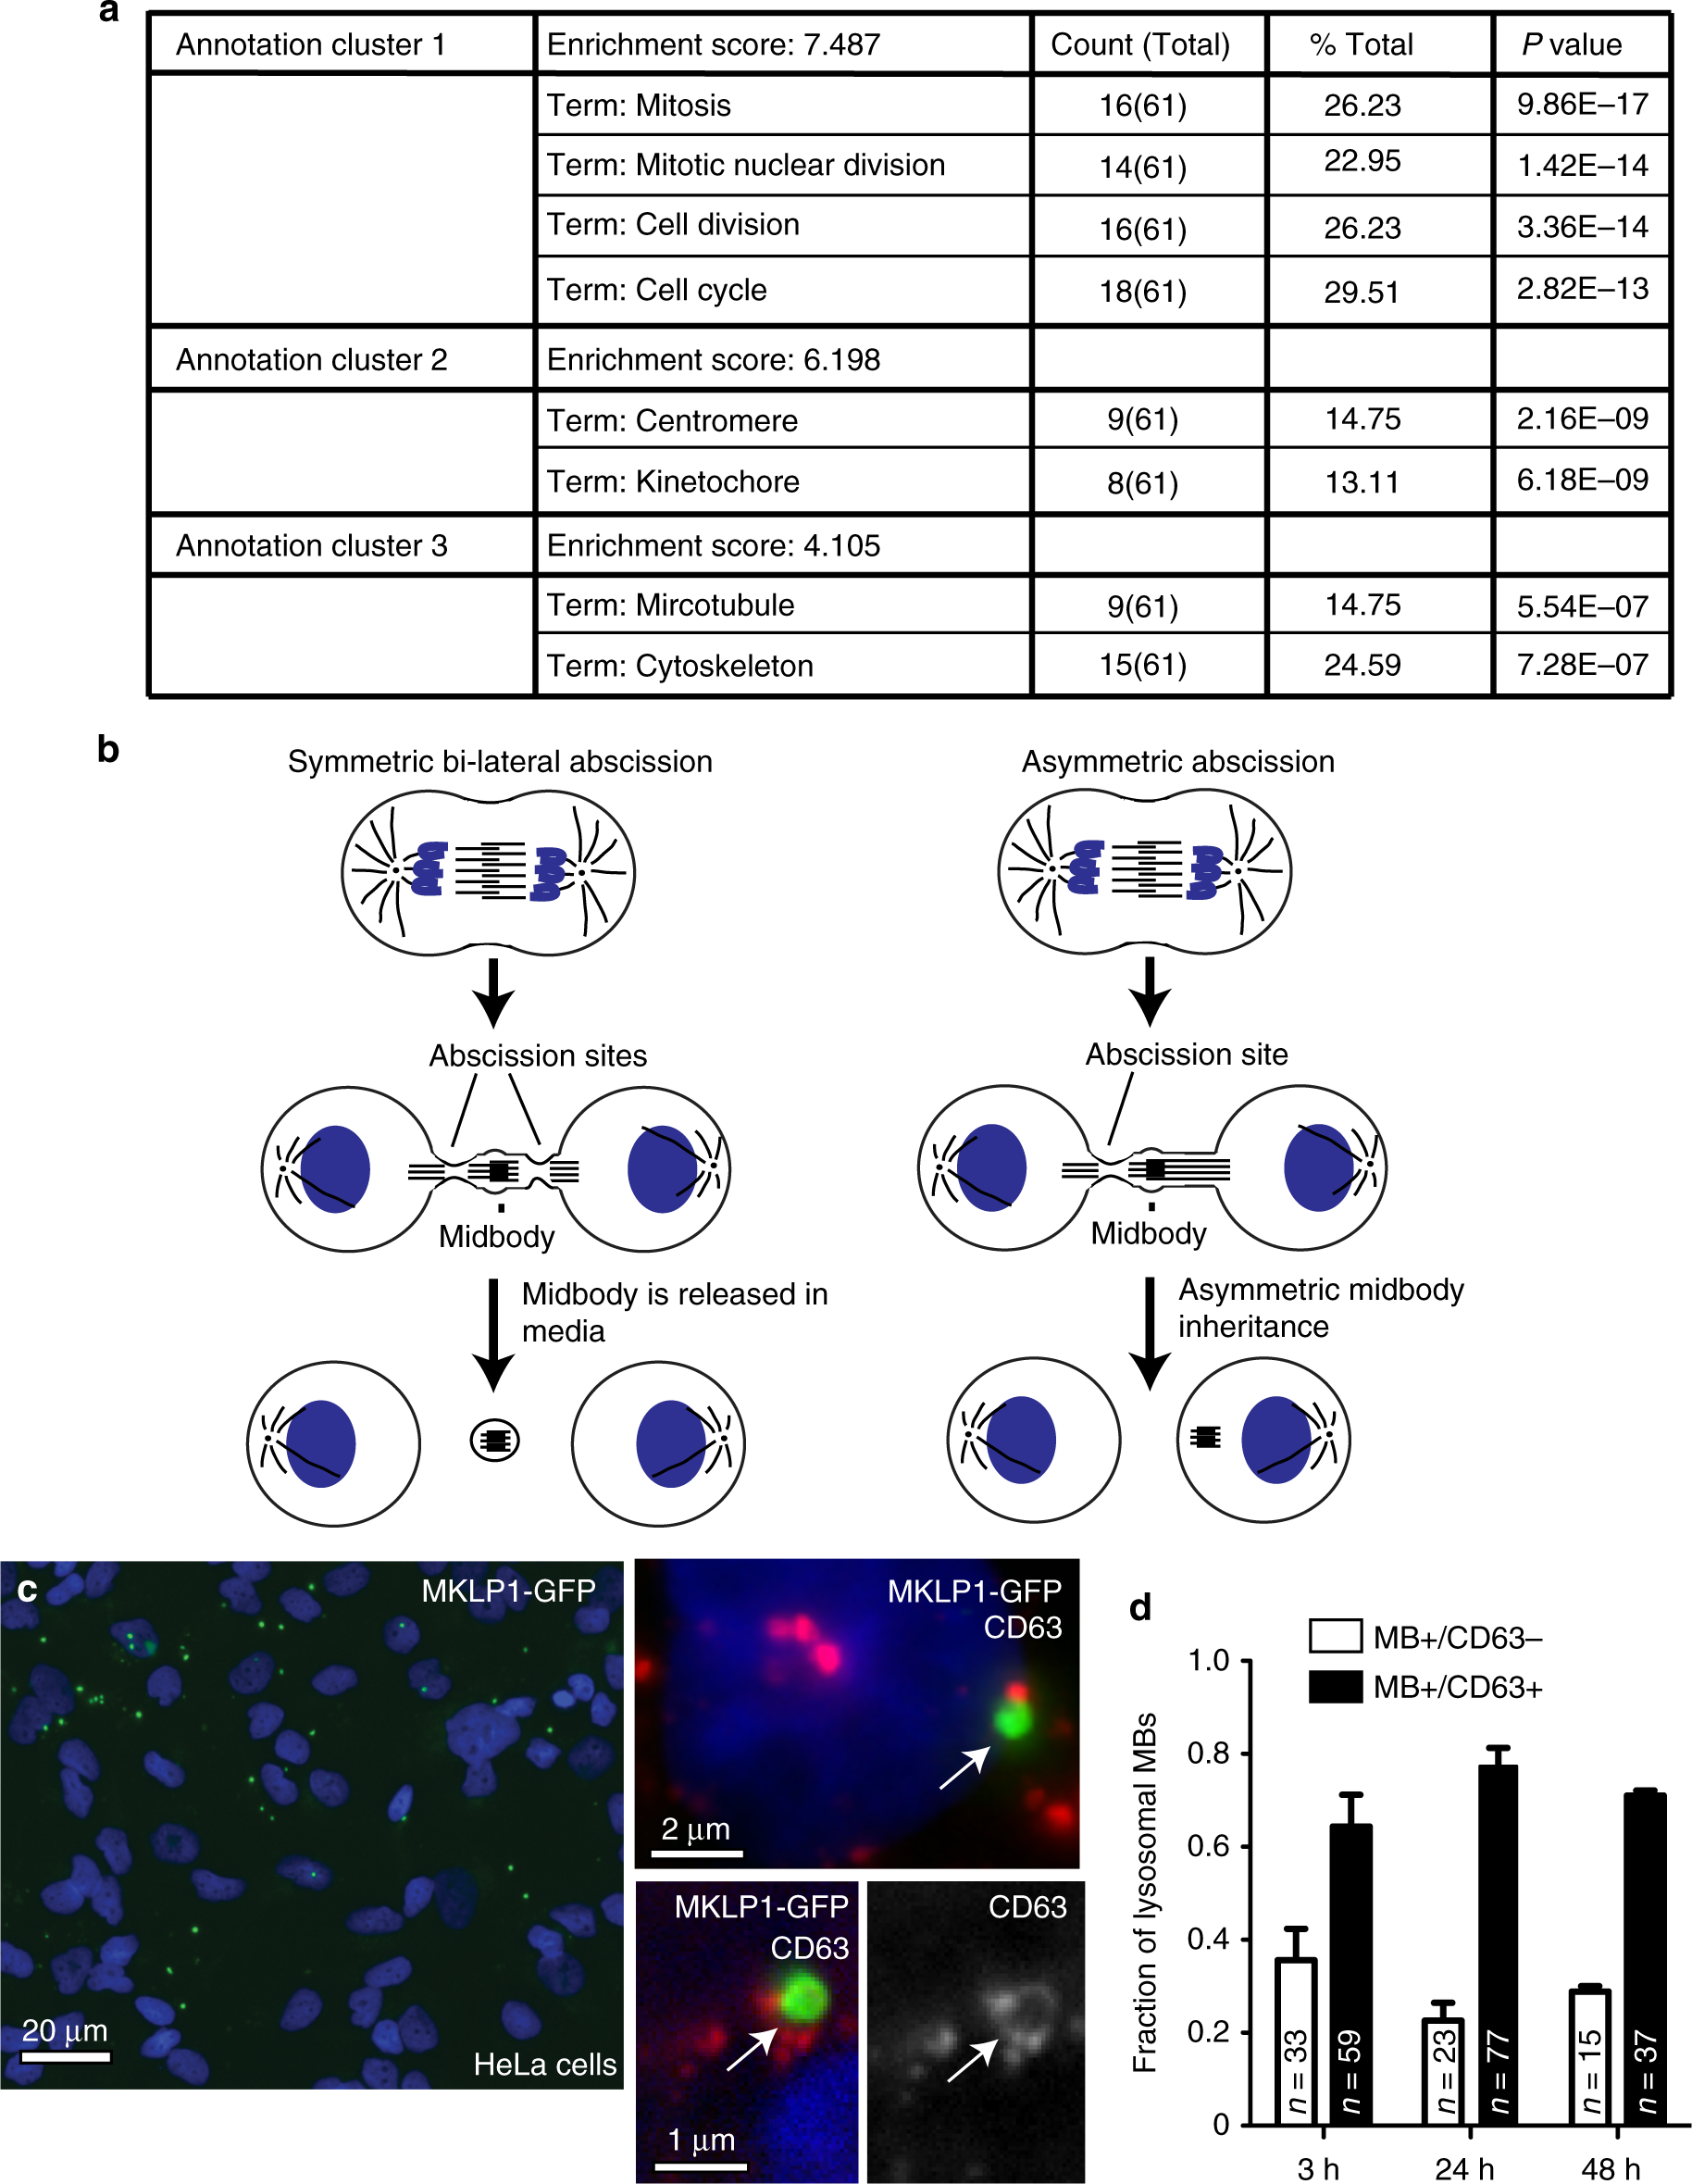 The post-abscission midbody is an intracellular signaling organelle